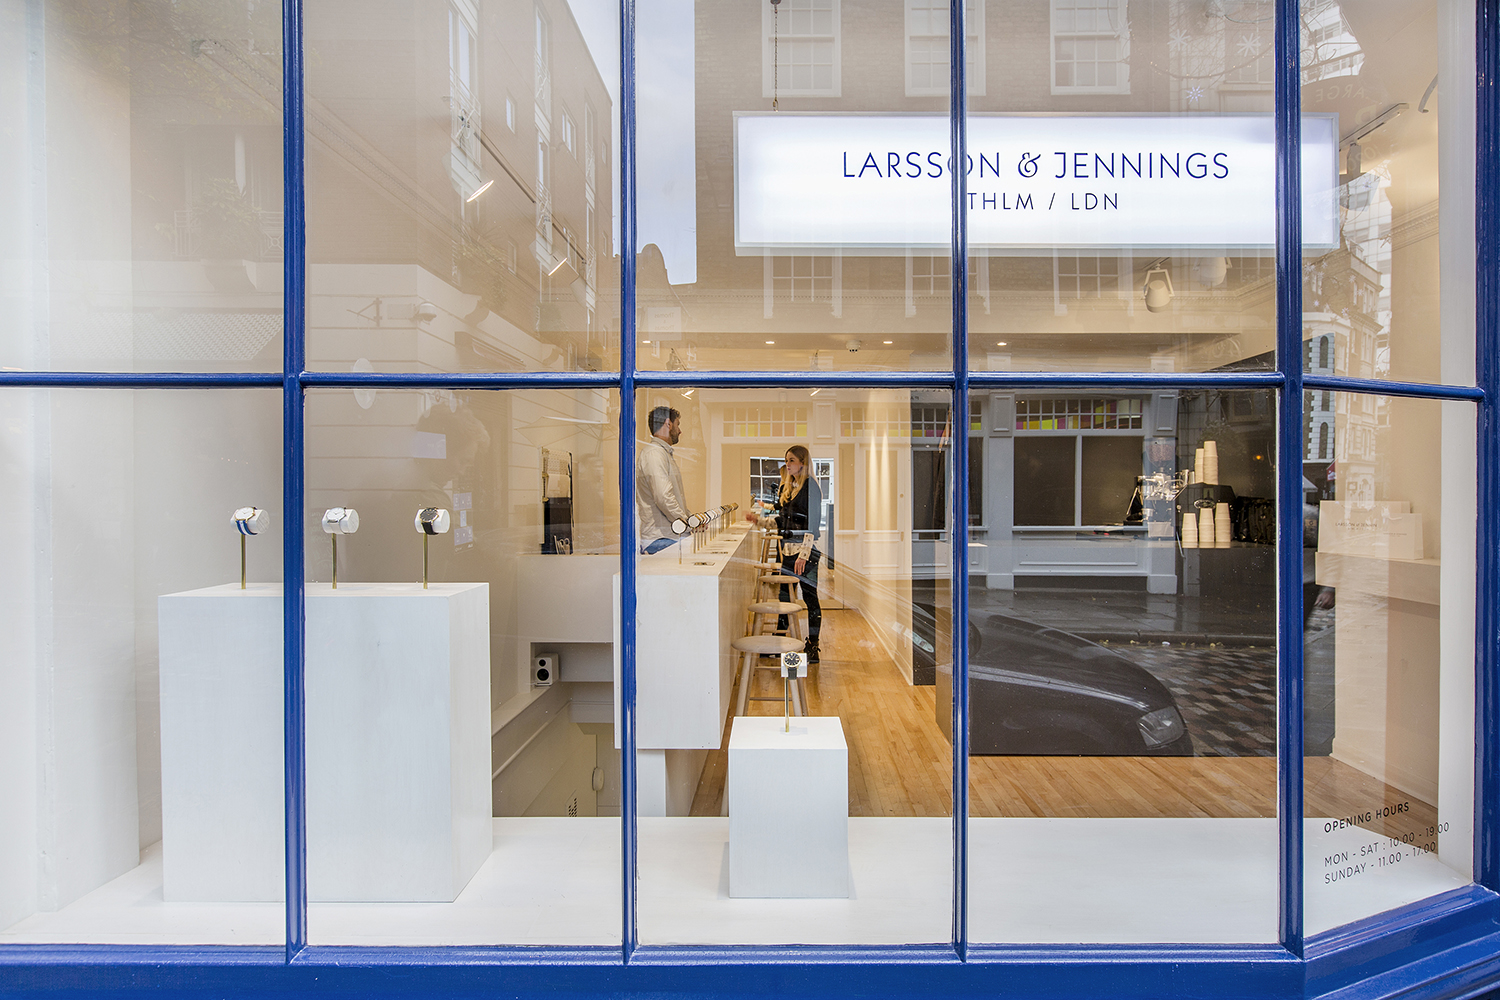 The minimalist styling of the Larsson & Jennings London boutique is a key selling point of the brand.